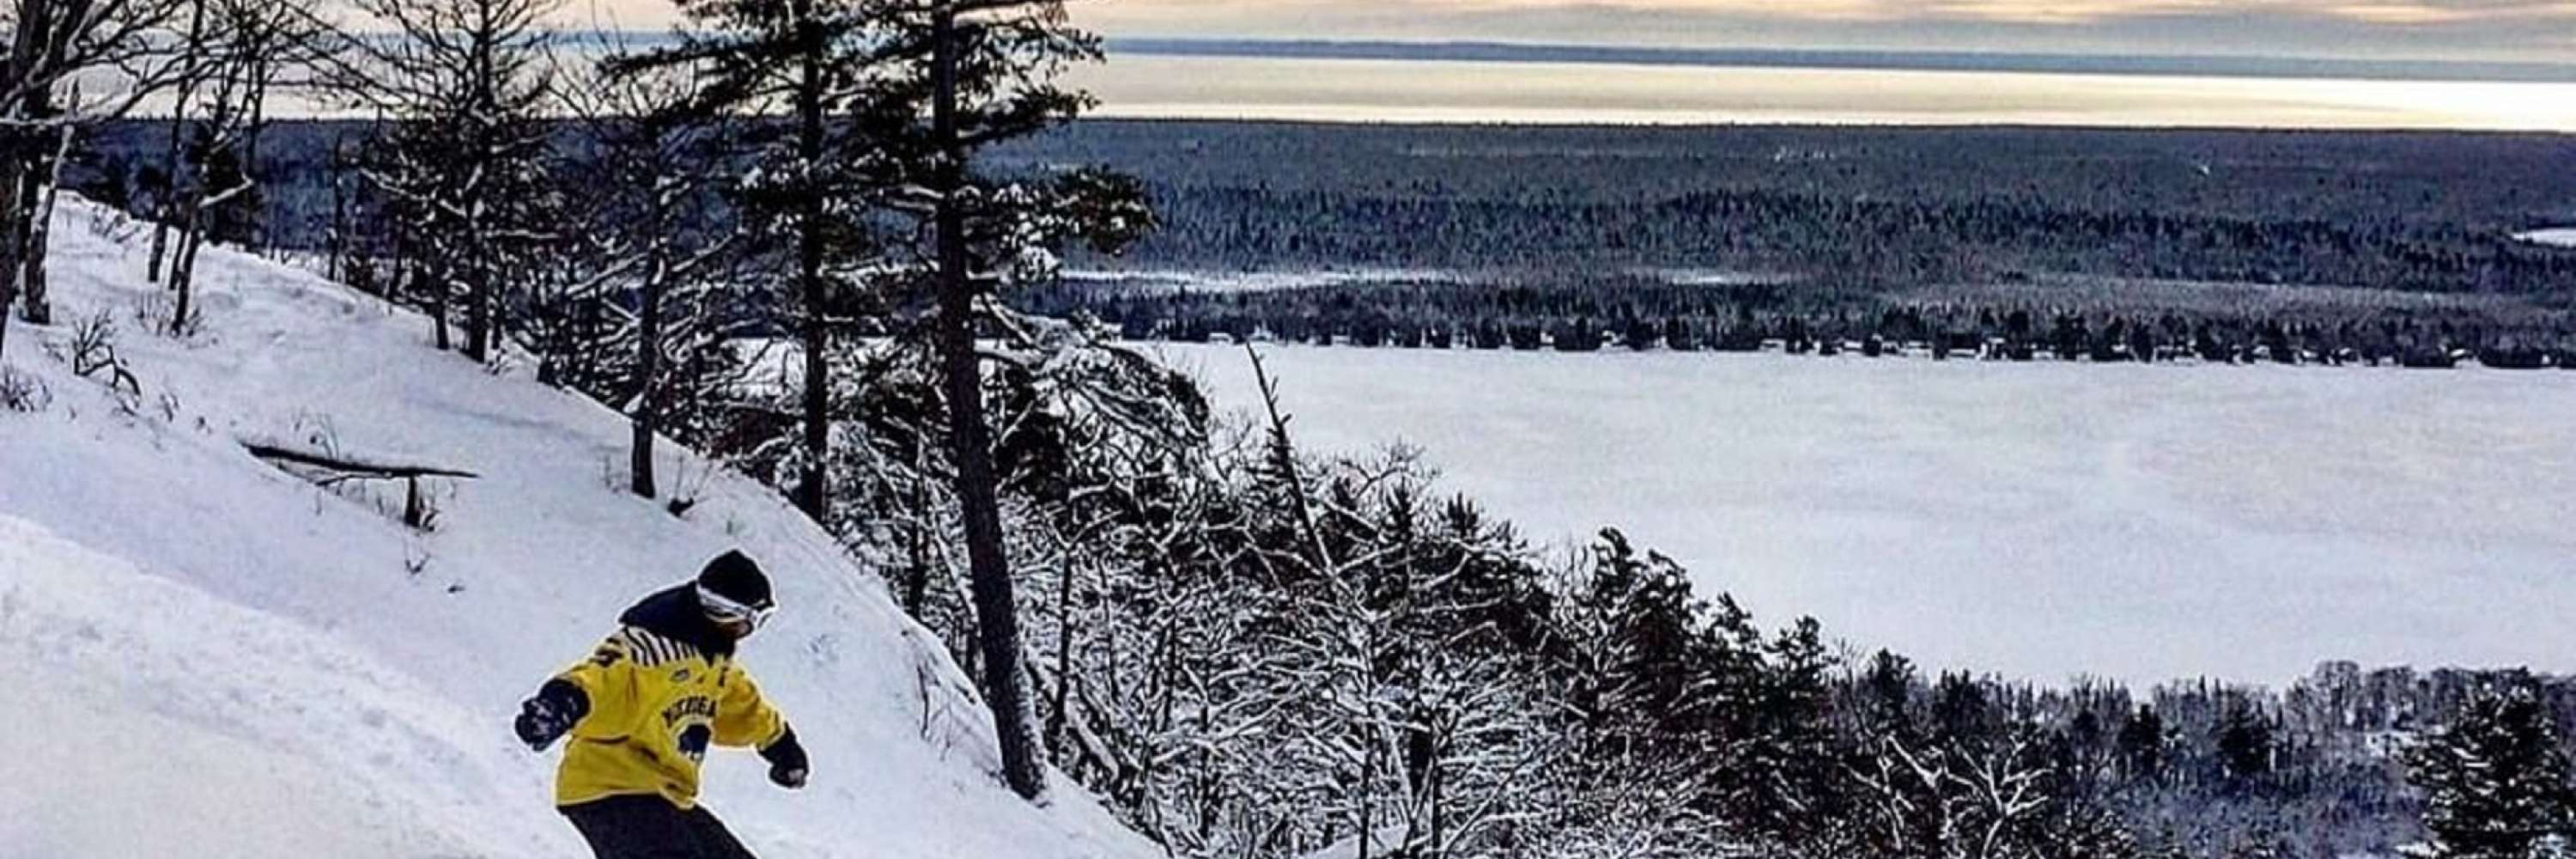 skier down the mountain with the lake in the distance, snow covered pines